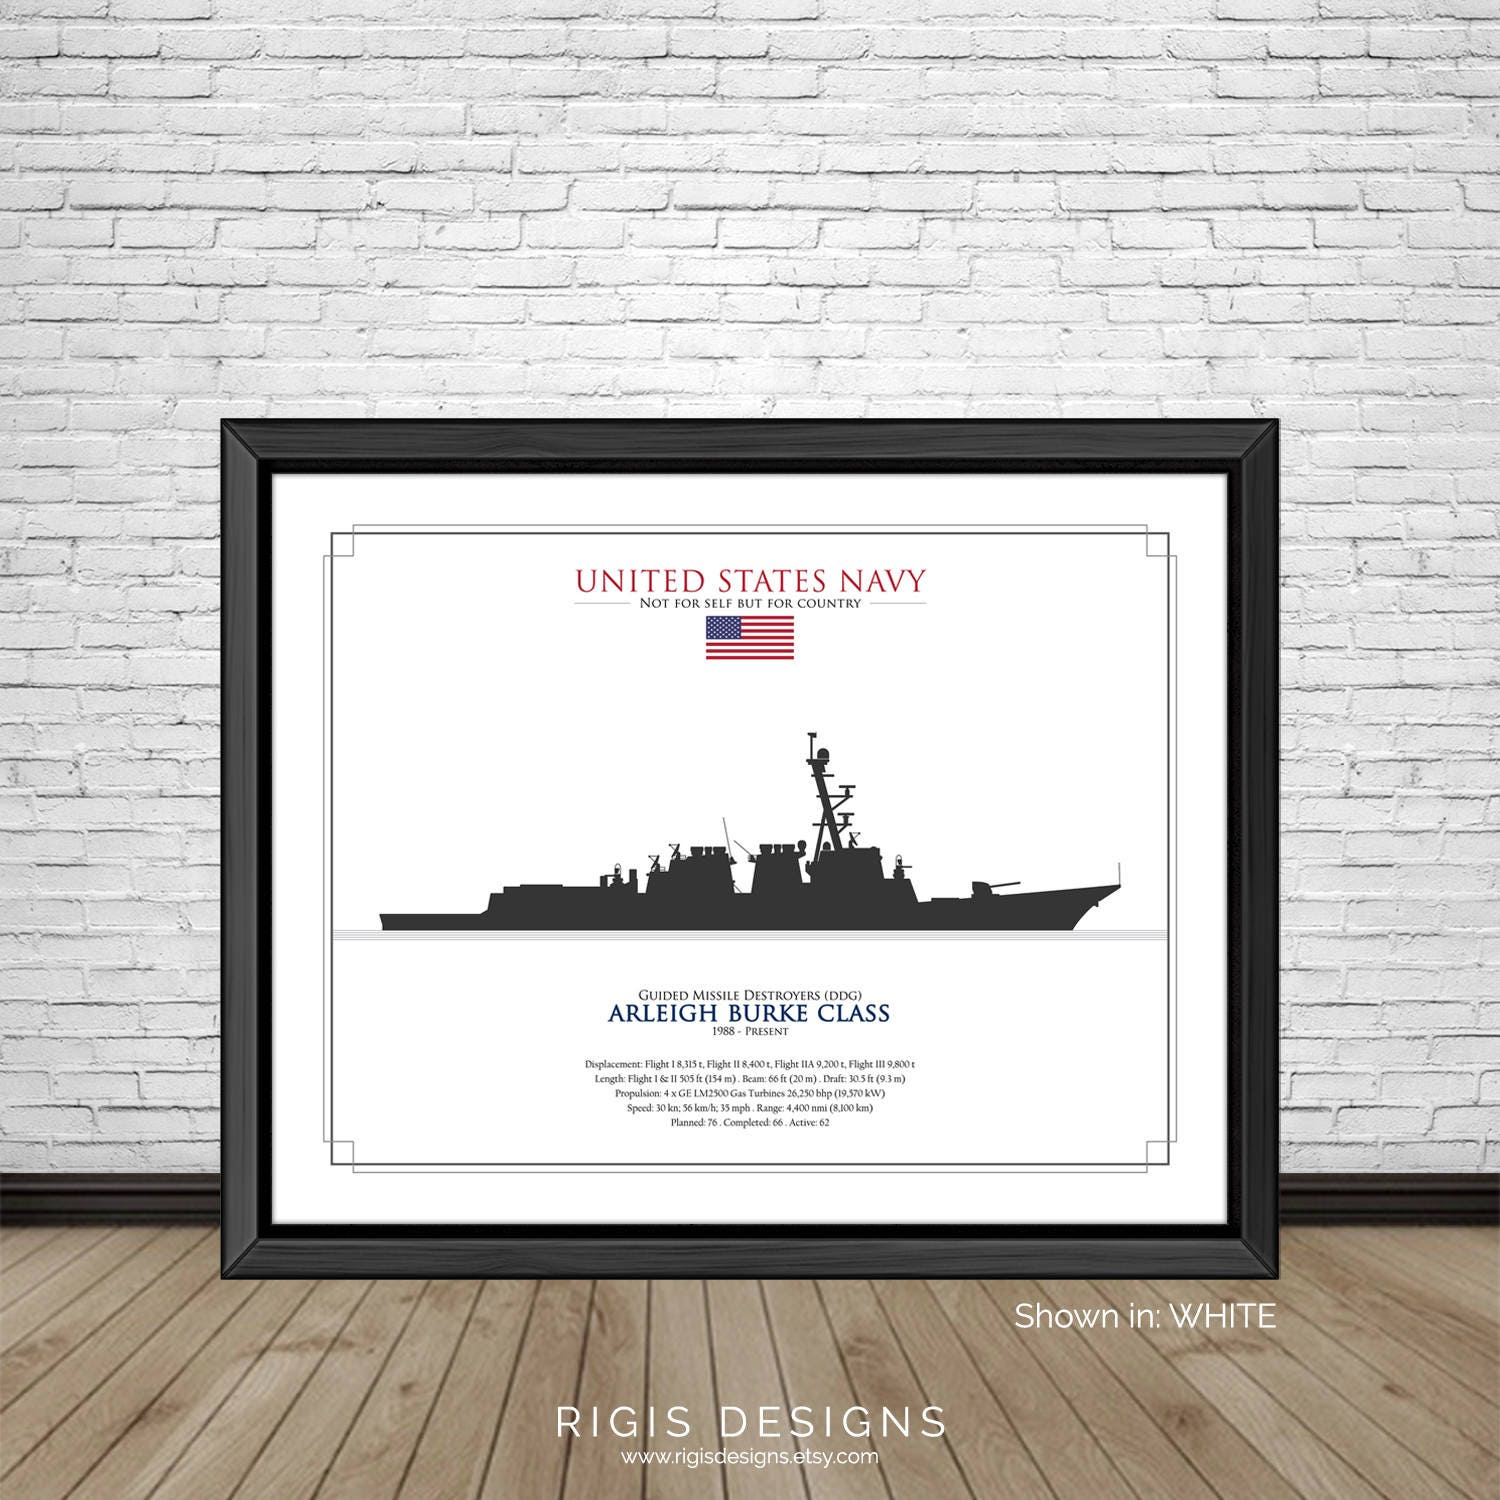 US Navy Ship Silhouette Arleigh Burke Class Guided Missile Destroyers DDG